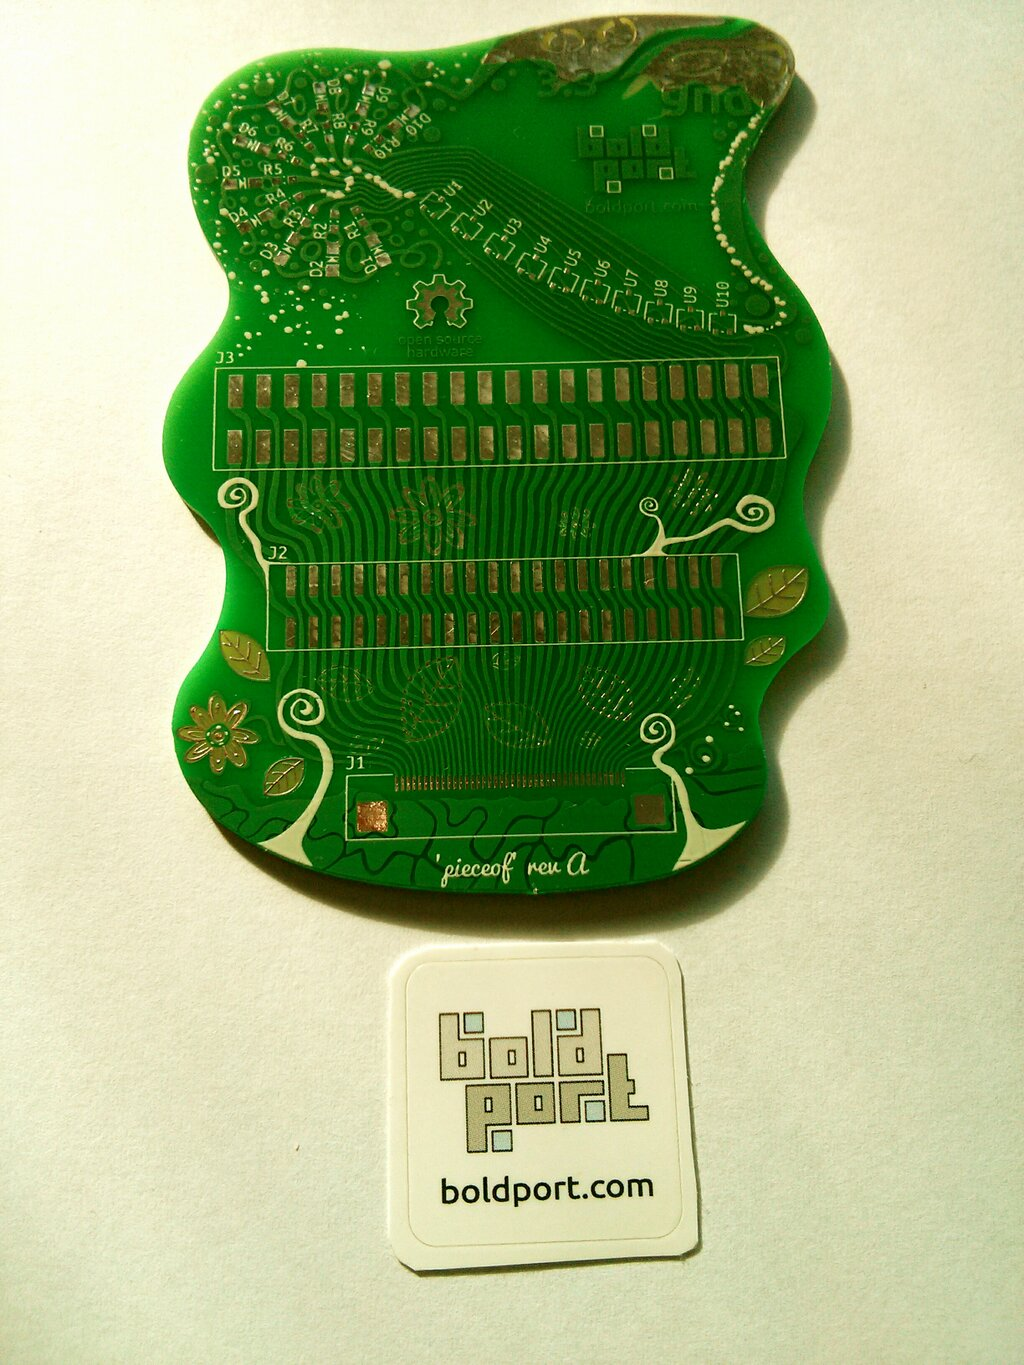 First look at pieceof   boldport